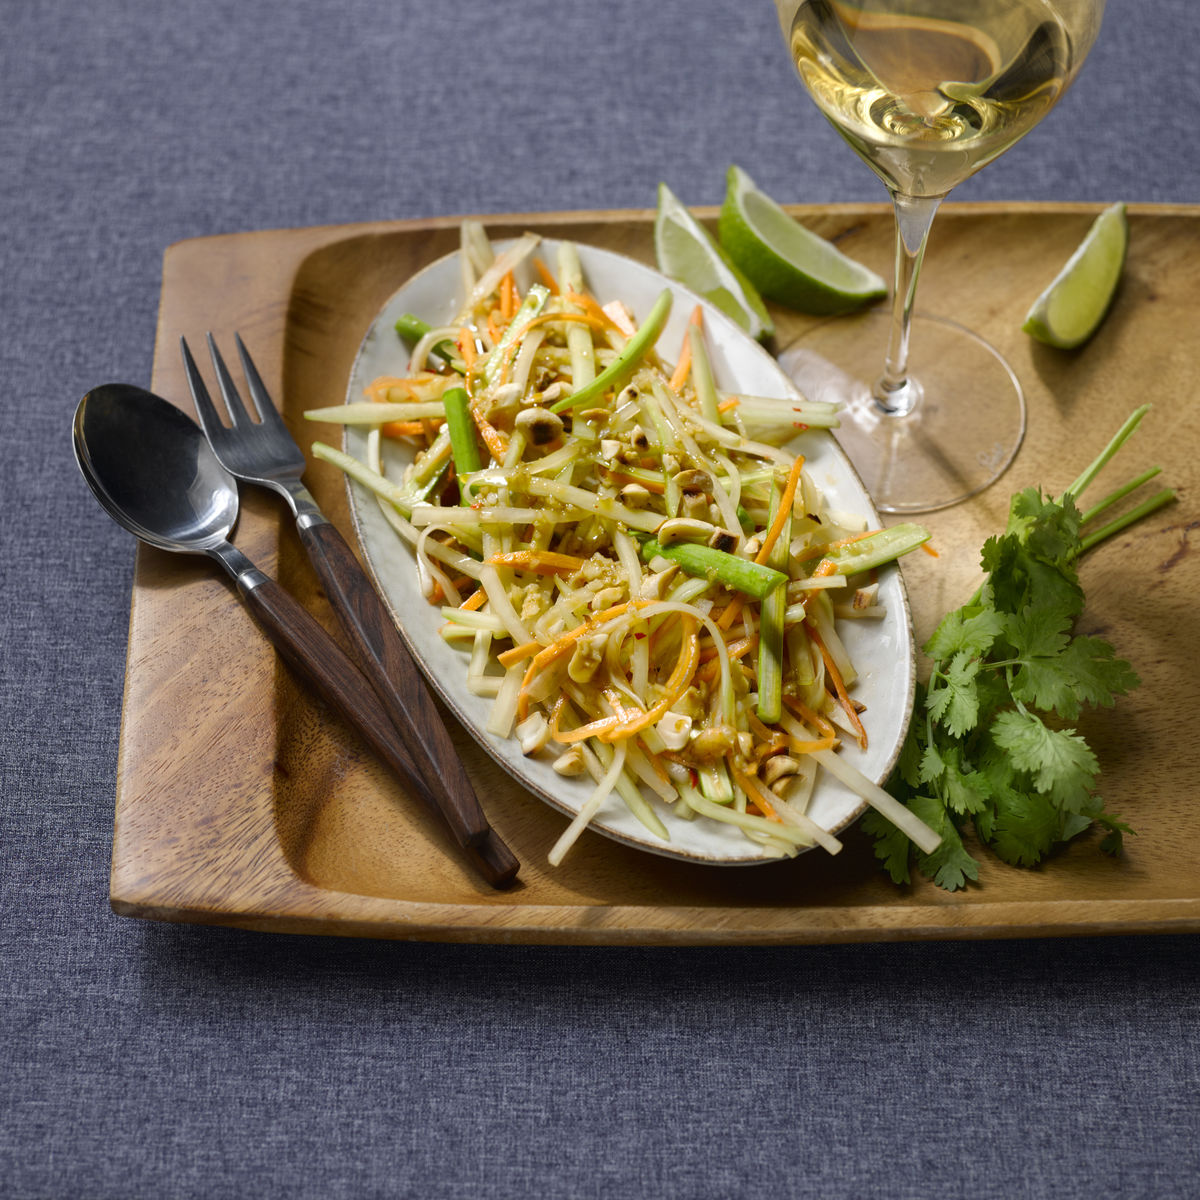 The picture shows the dish Som Tam and a glass of white wine.